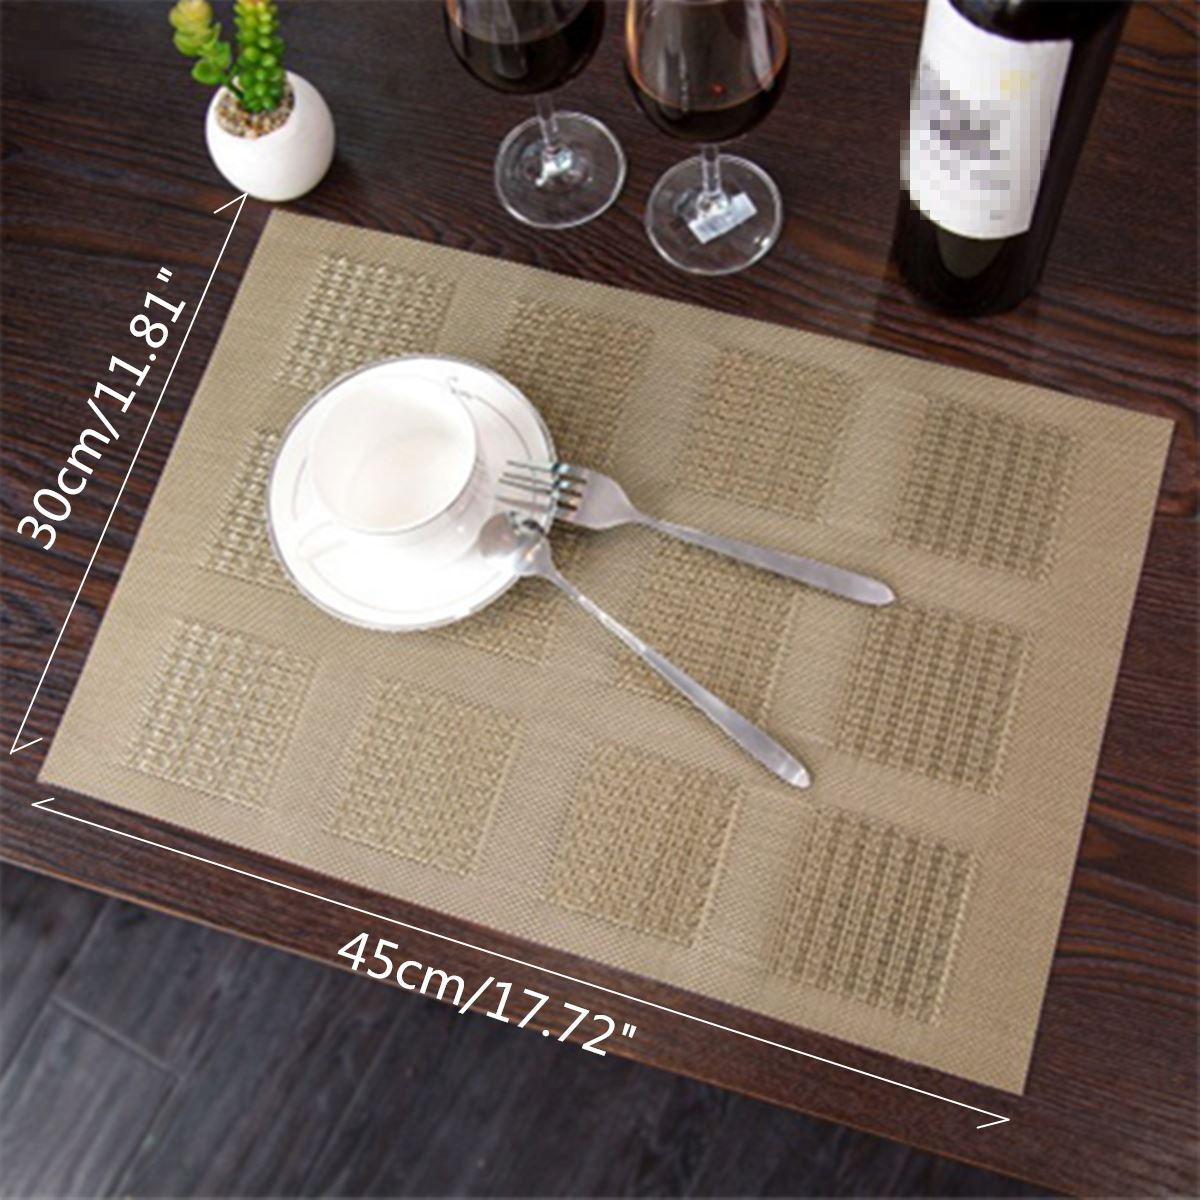 Rectangular Insulation Tablemat Heat Resistant Dining Table Mat Pad  Waterproof Pvc Placemat Kitchen Table Decoration Tableware